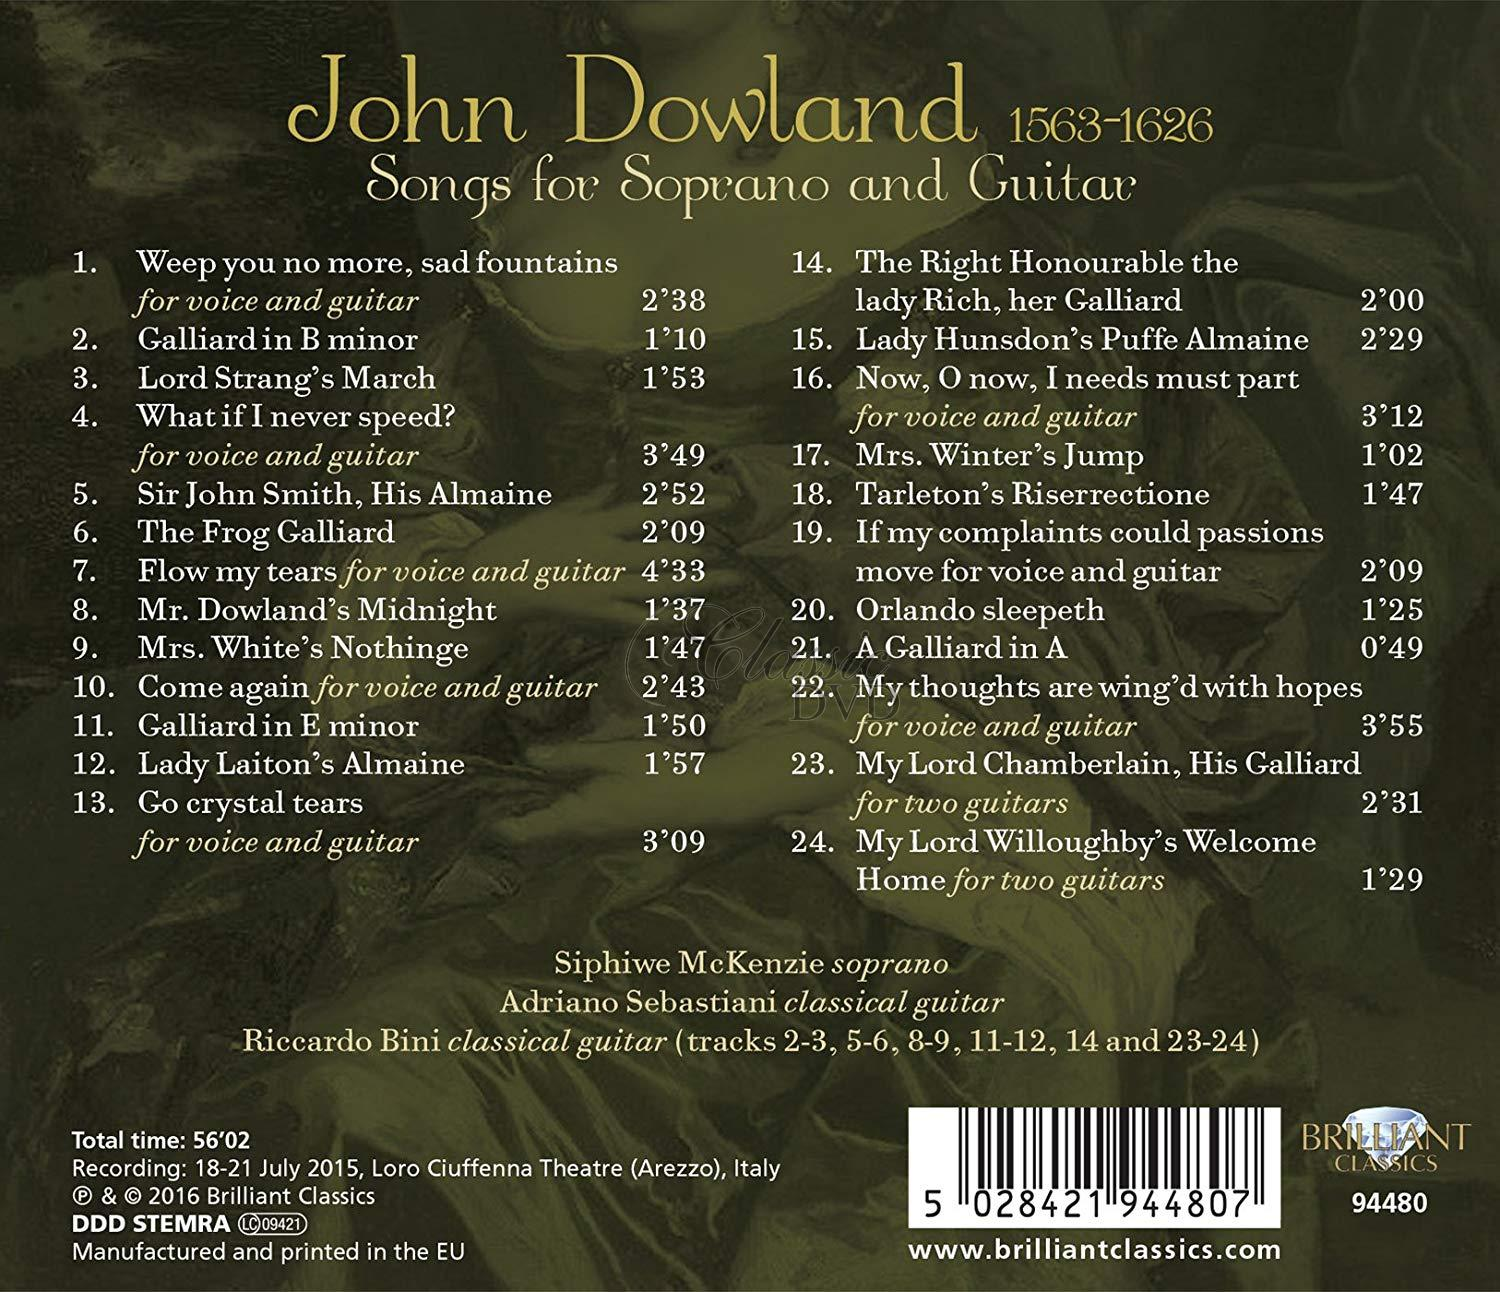 DOWLAND: Songs for Soprano and Guitar; Siphiwe McKenzie, Riccardo Bini, Adriano Sebastiani (CD)